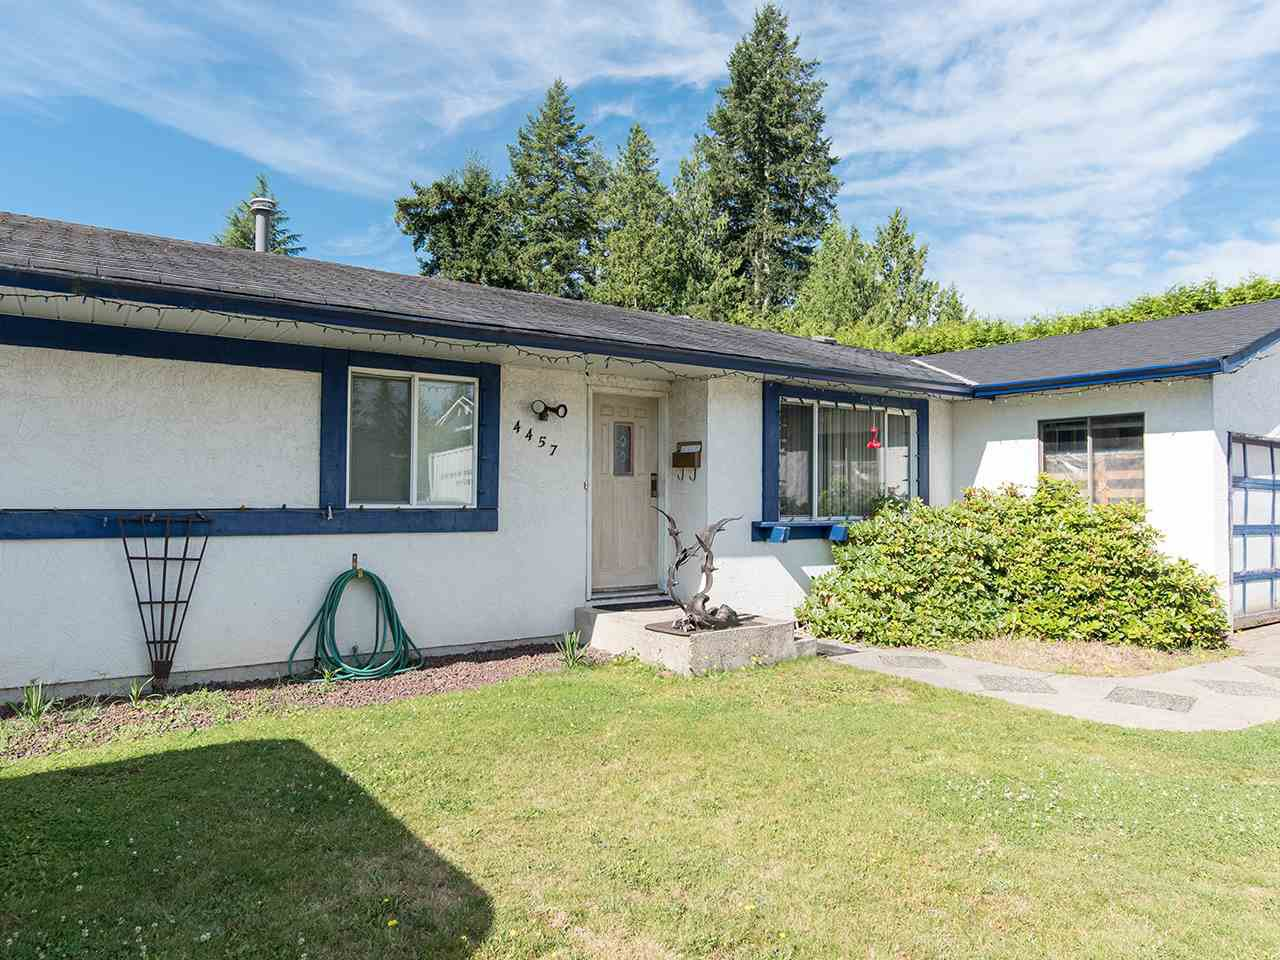 Main Photo: 4457 203 Street in Langley: Langley City House for sale : MLS®# R2481001